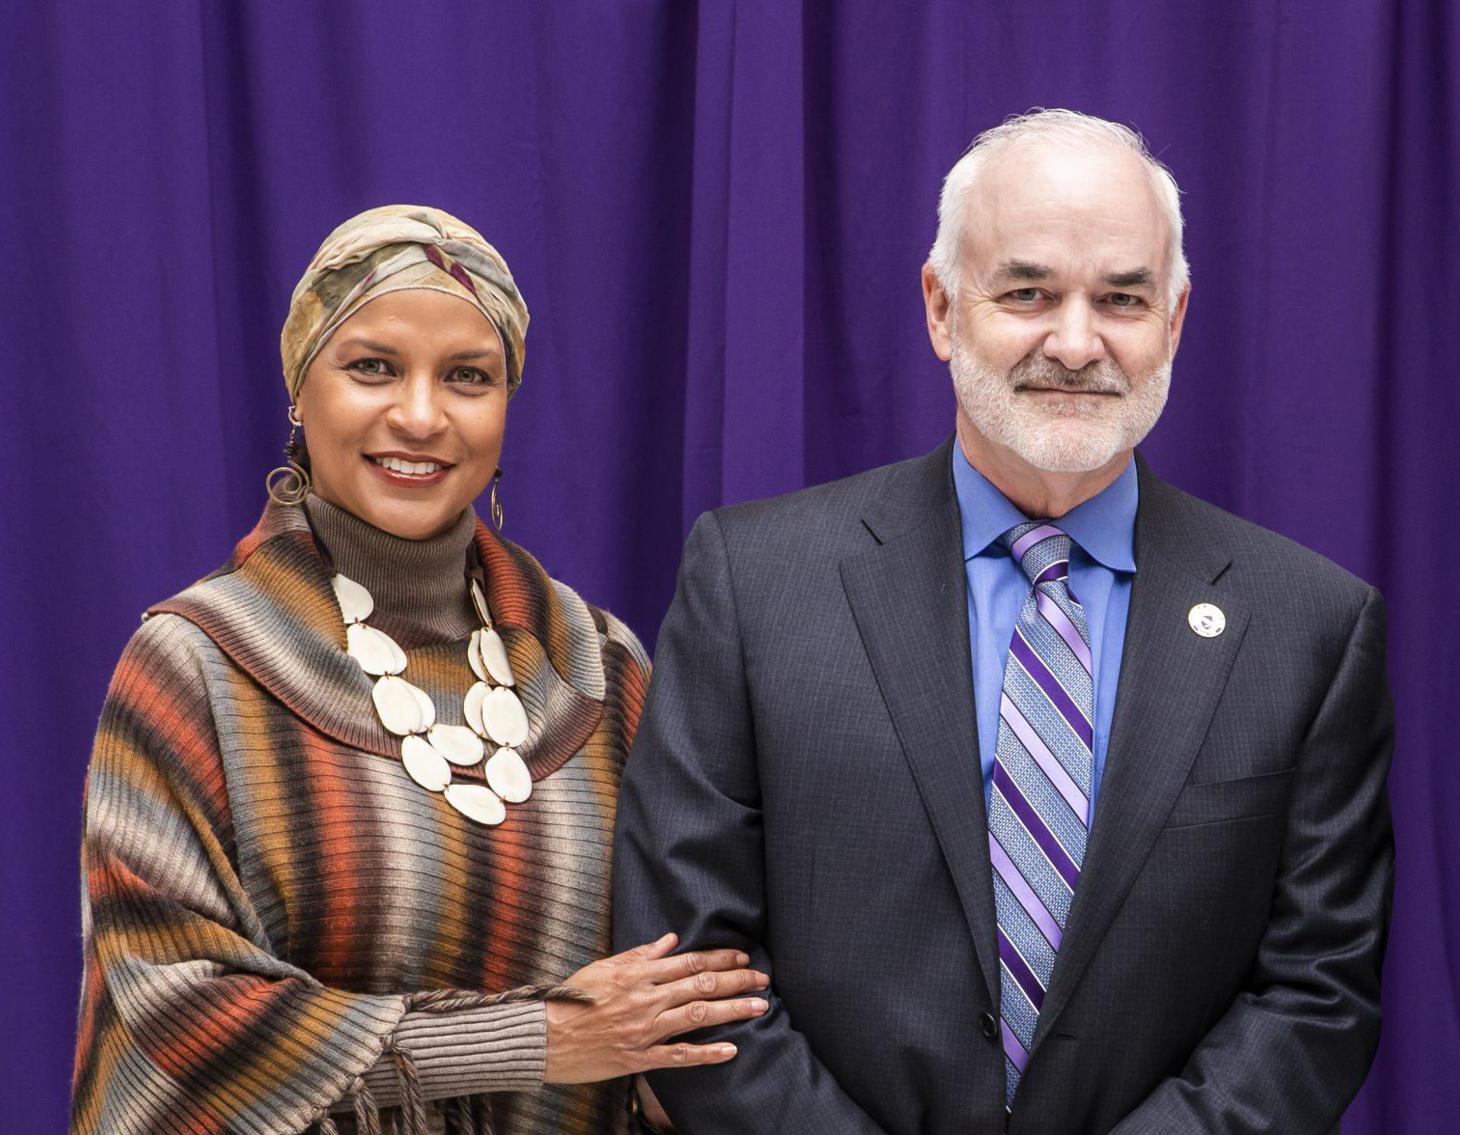 Local couple David and Karen Takes have recently made a $10 million donation to UNI, David's alma mater.